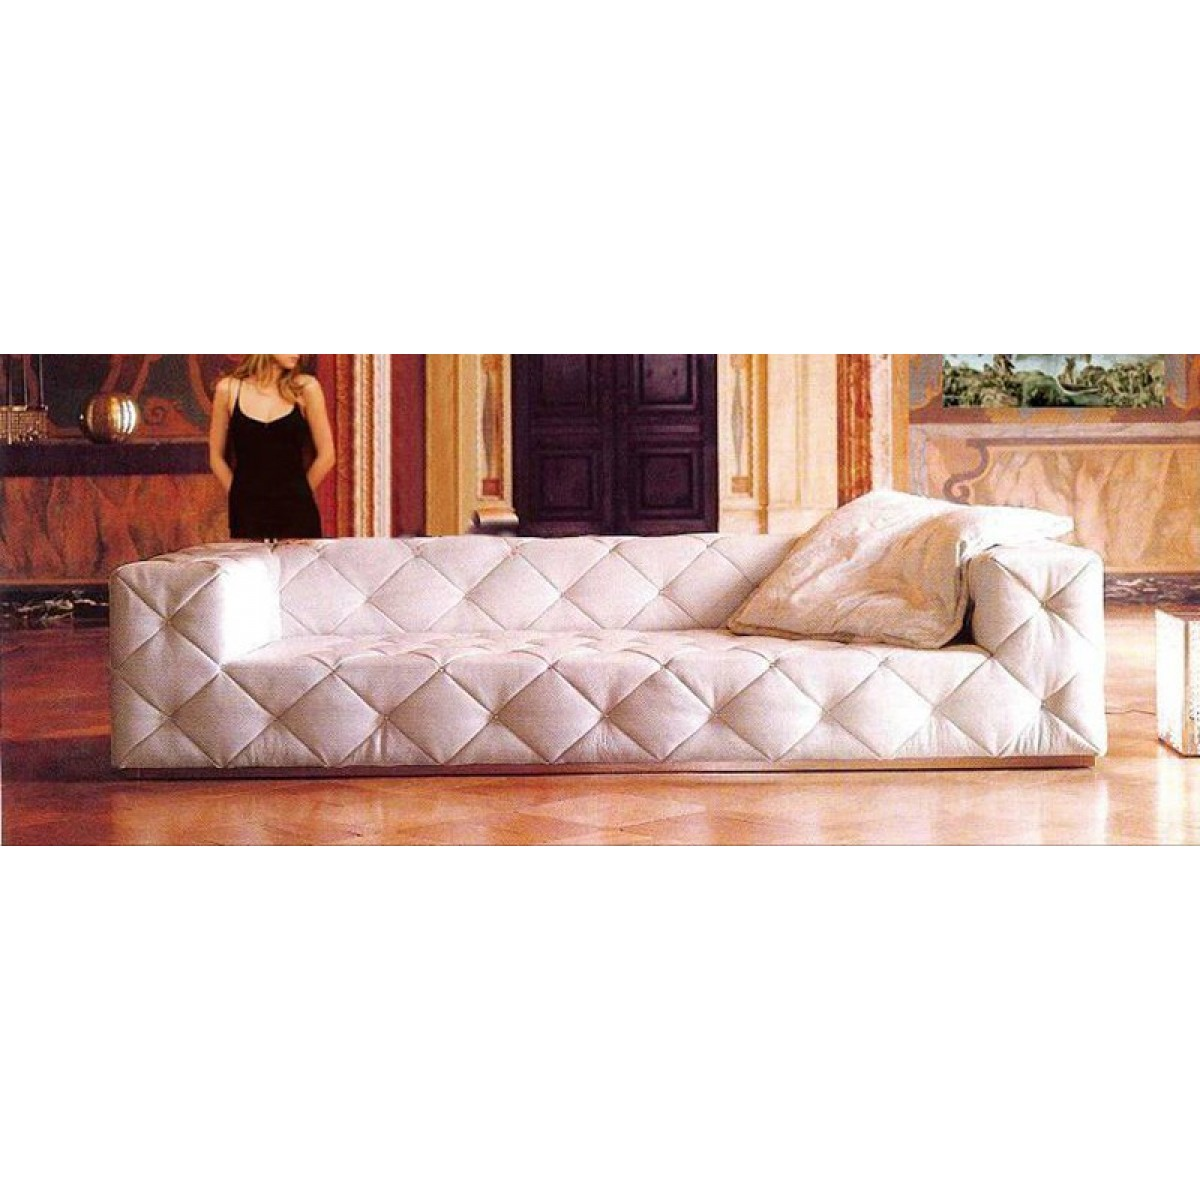 Canap 3 places en cuir pleine fleur chesterfield carre pop design - Canape chesterfield cuir ...